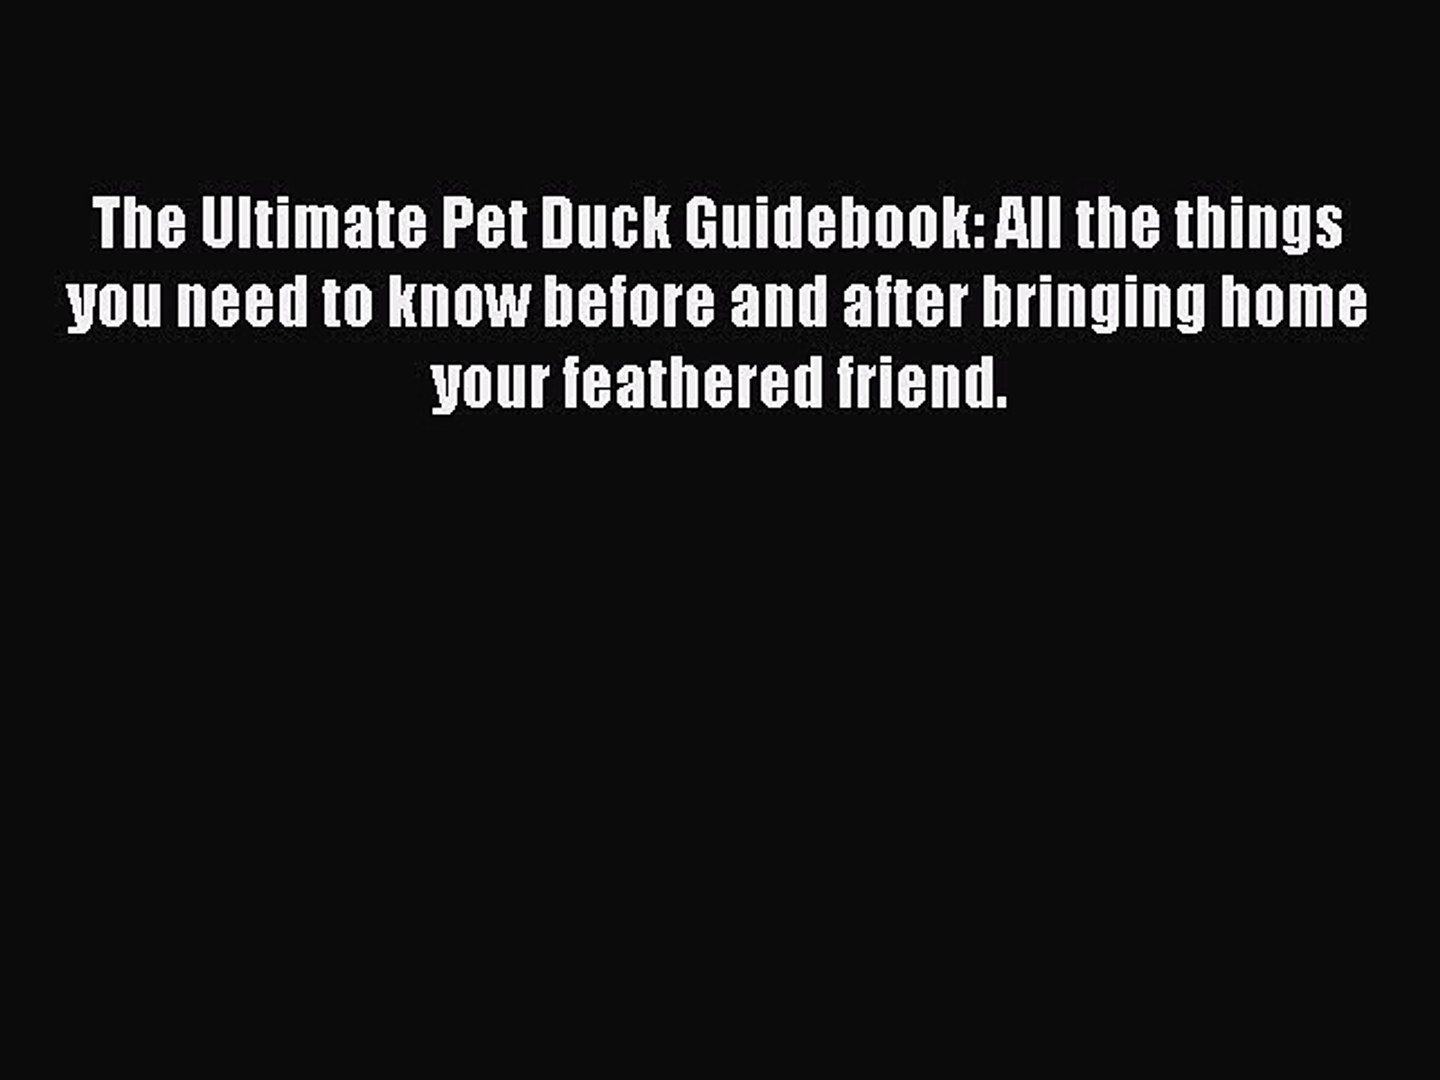 The Ultimate Pet Duck Guidebook All the things you need to know before bringing home your feathered friend.